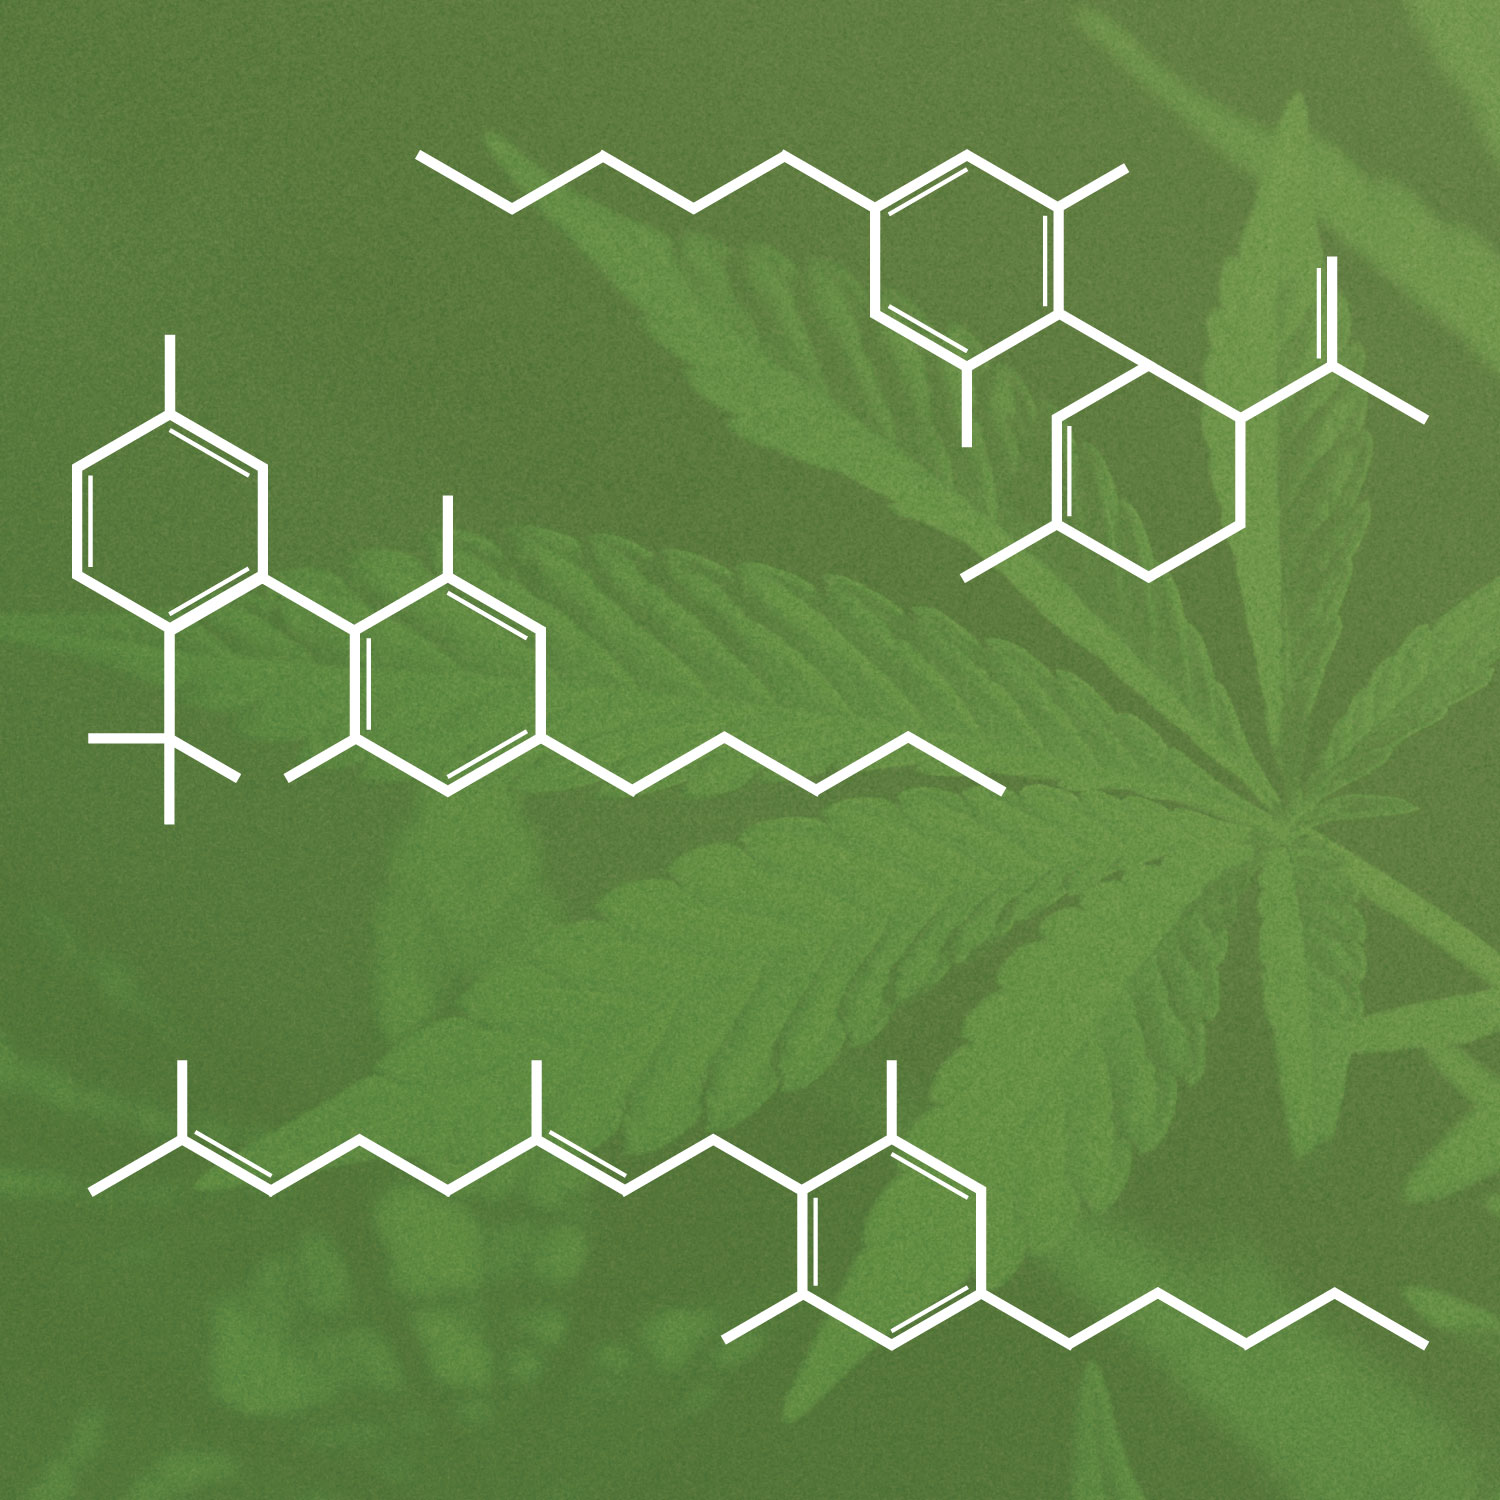 Chemical structures for structures for cannabichromene, cannabinol, and cannabigerol overlay an image of the marijuana leaf.